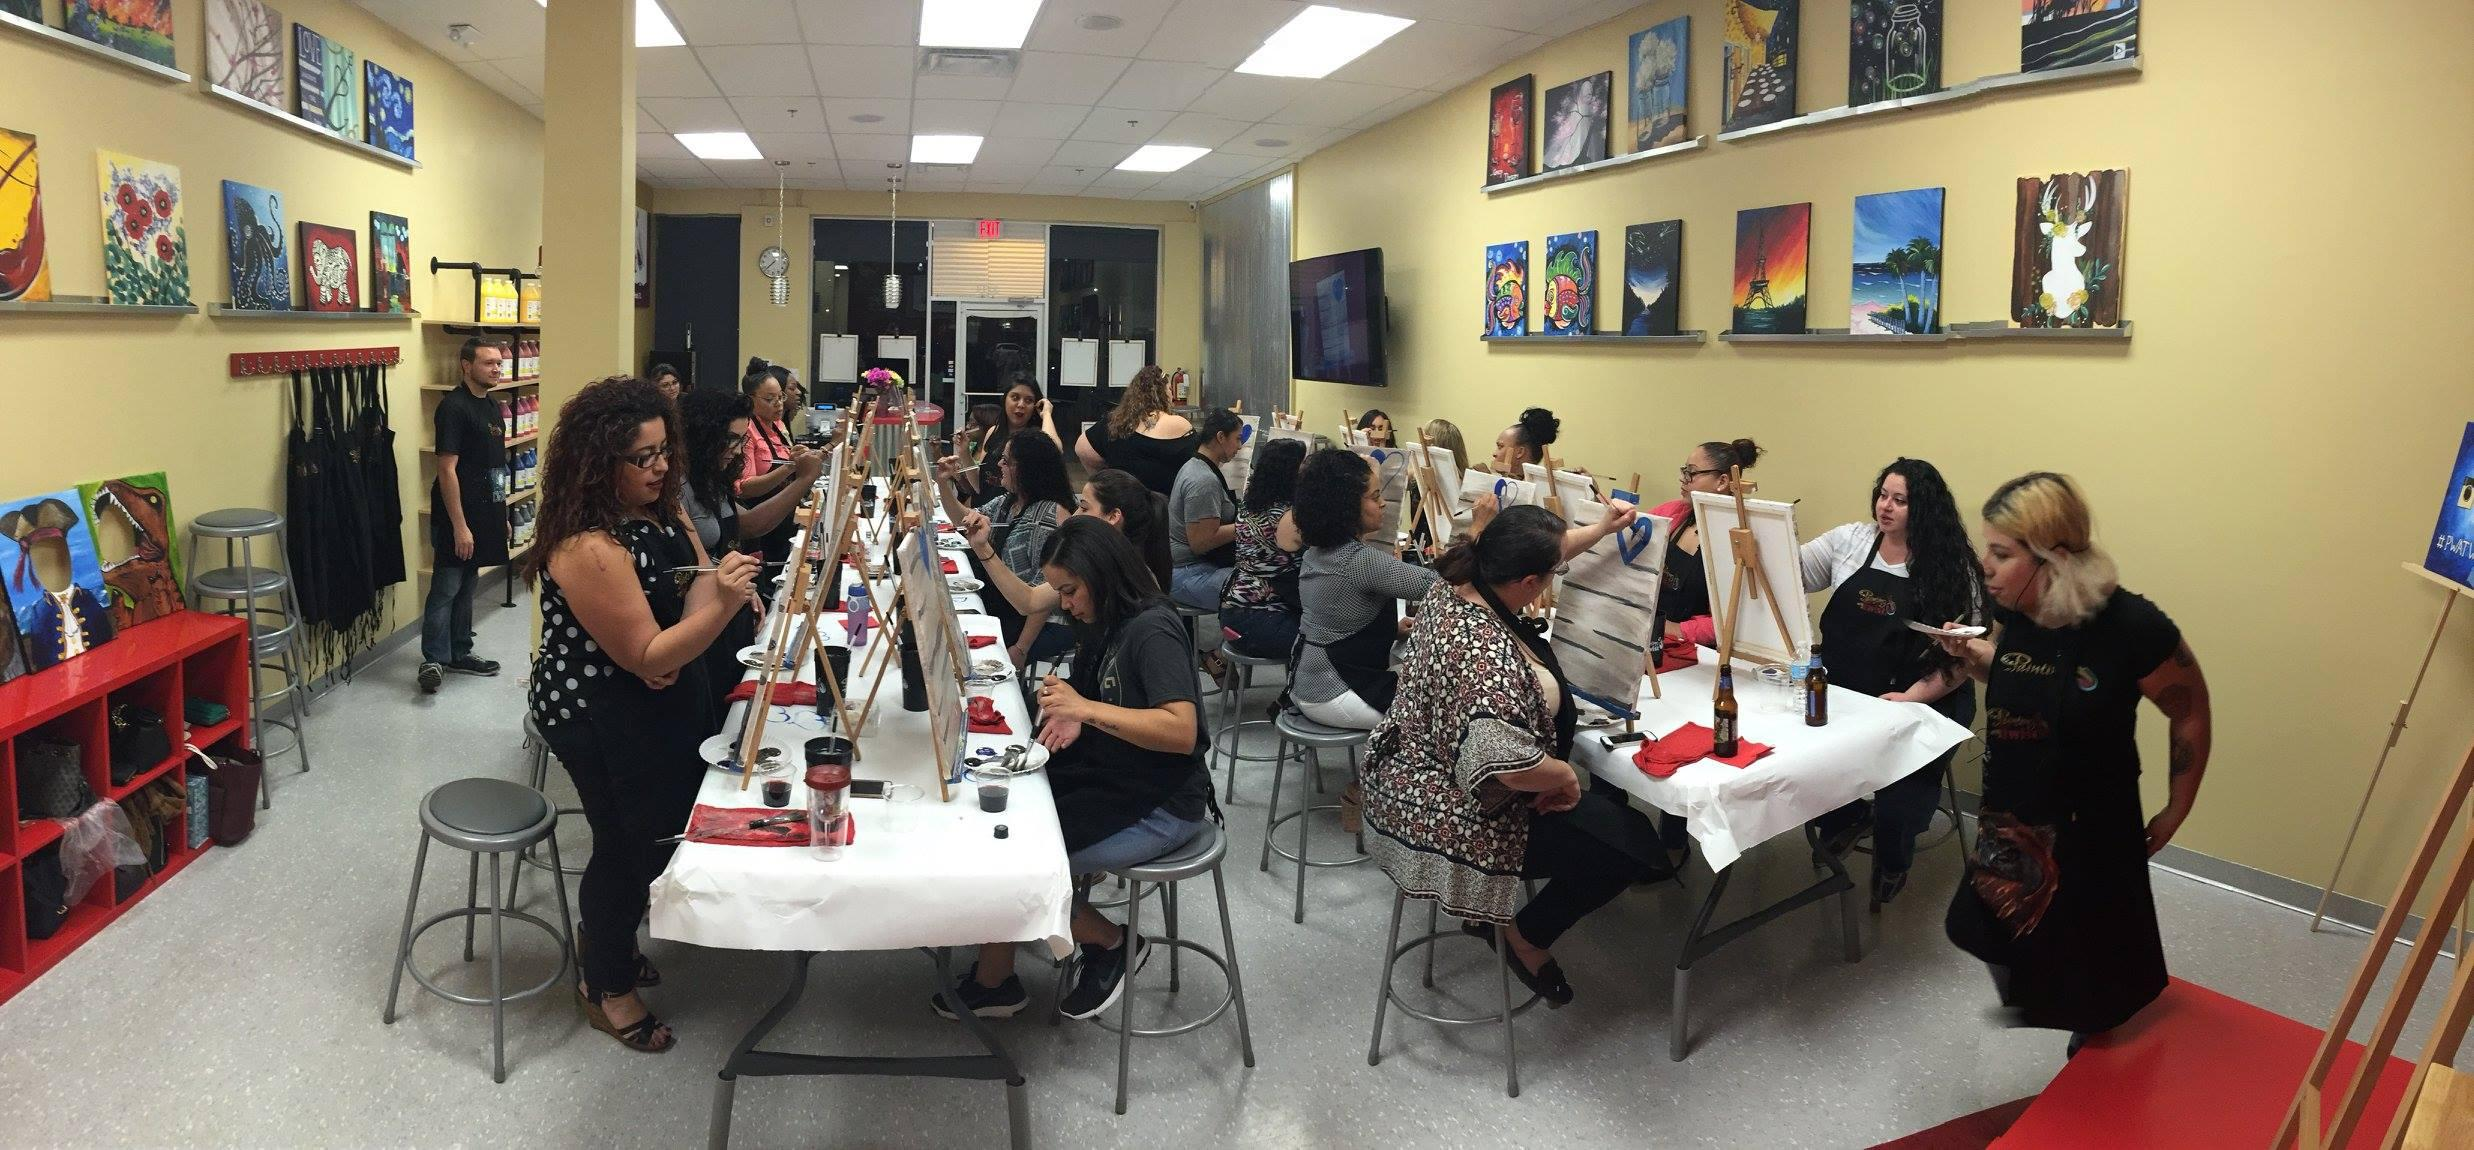 Painting with a twist in orlando fl 32803 for Wine and paint orlando